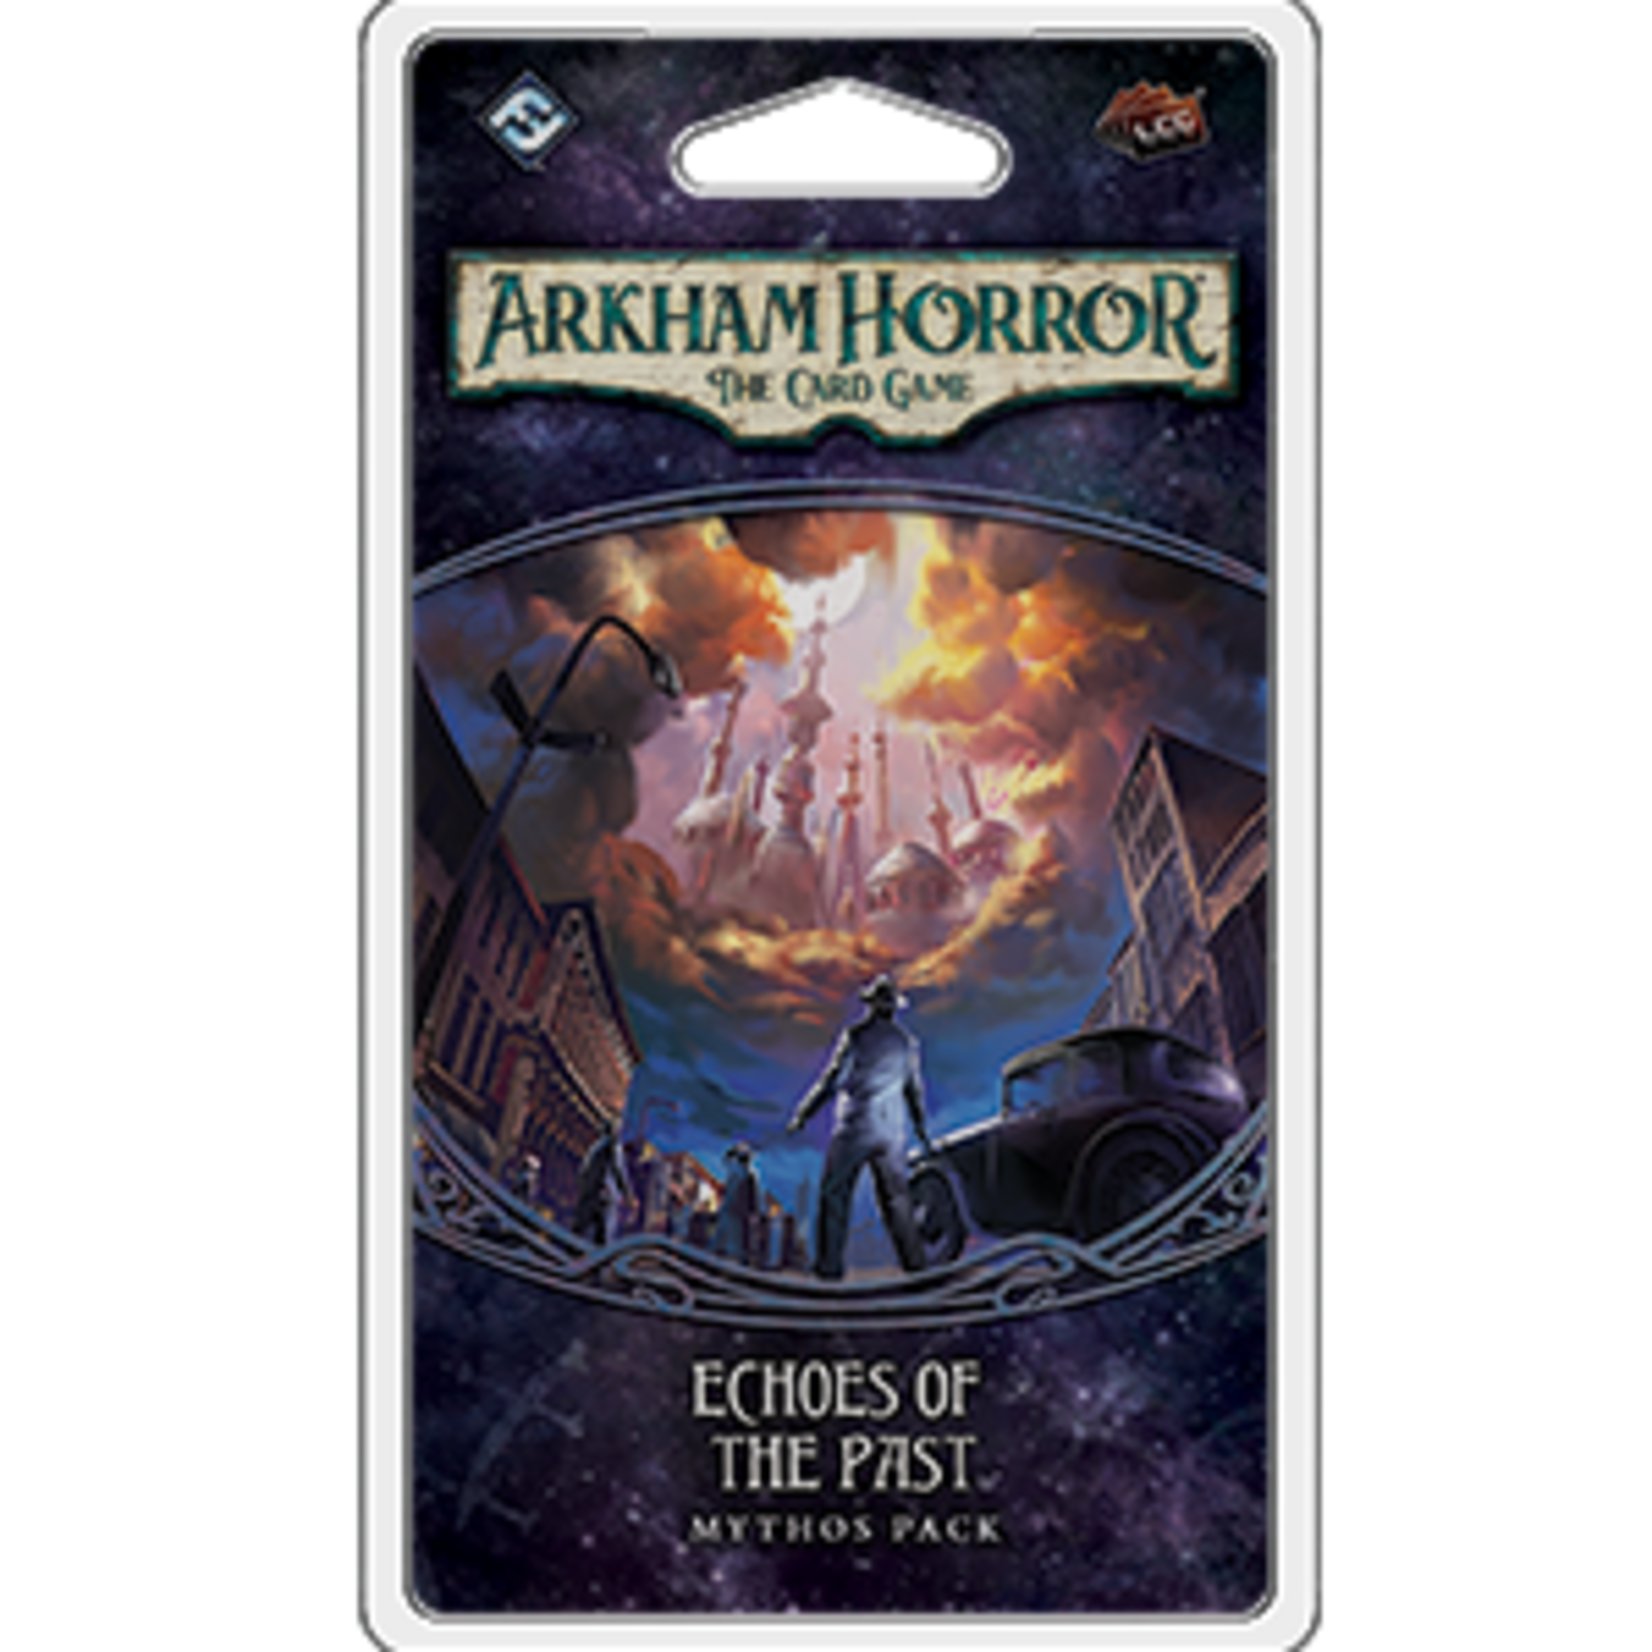 Arkham Horror LCG: Echoes of the Past POC